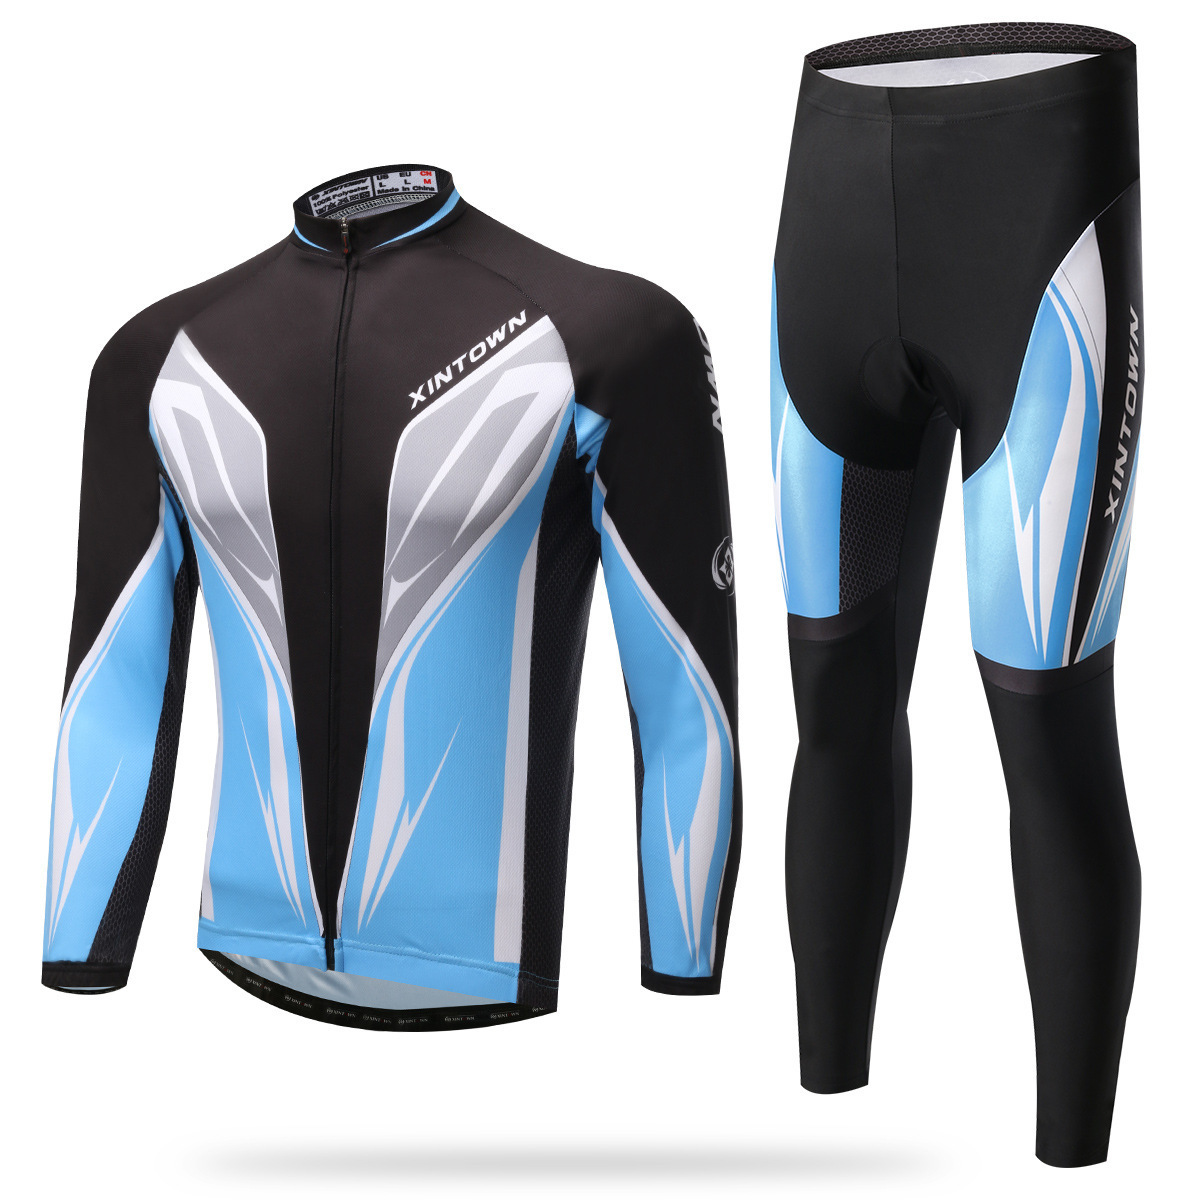 XINTOWN Pro Team Cycling Jersey Set Long Sleeve Bicycle Bike Clothing Ropa Ciclismo Cycling Cothing Set Spring Autumn Pockets veobike winter thermal brand pro team cycling jersey set long sleeve bicycle bike cloth cycle pantalones ropa ciclismo invierno